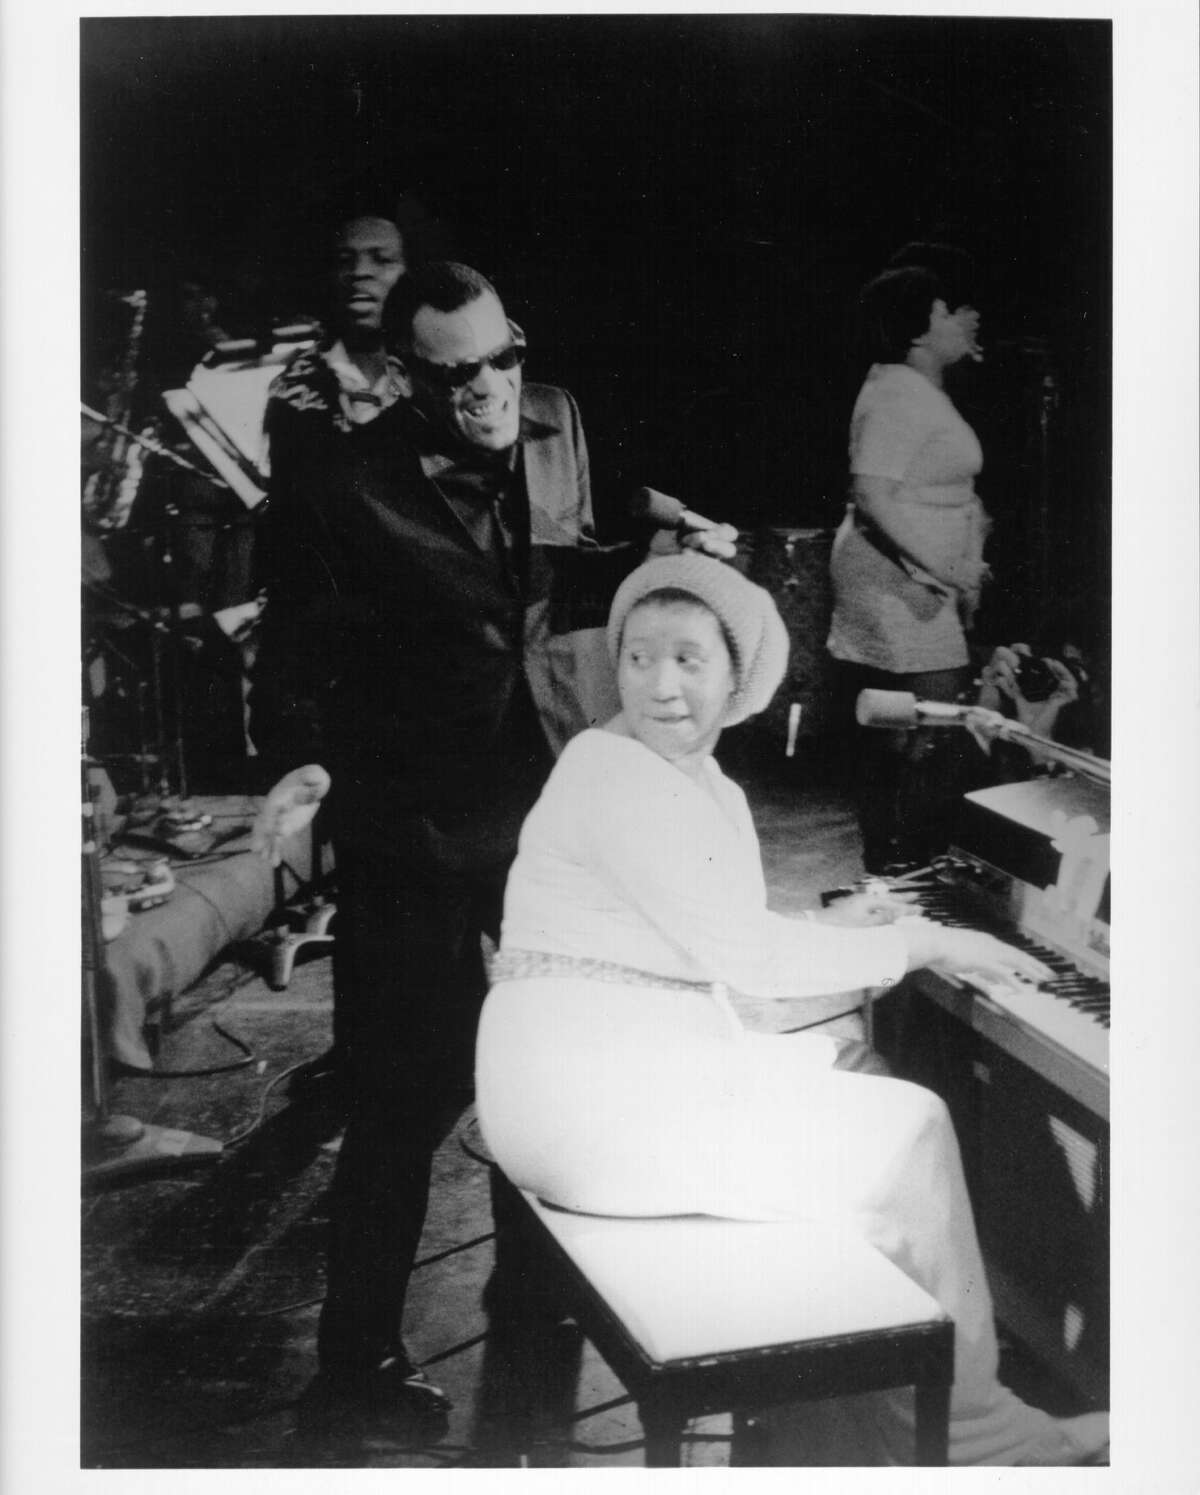 Entertainers and singers Ray Charles and Aretha Franklin perform onstage at the Winterland Ballroom in February 1971 in San Francisco, California. >> See more photos of Aretha through the years >>